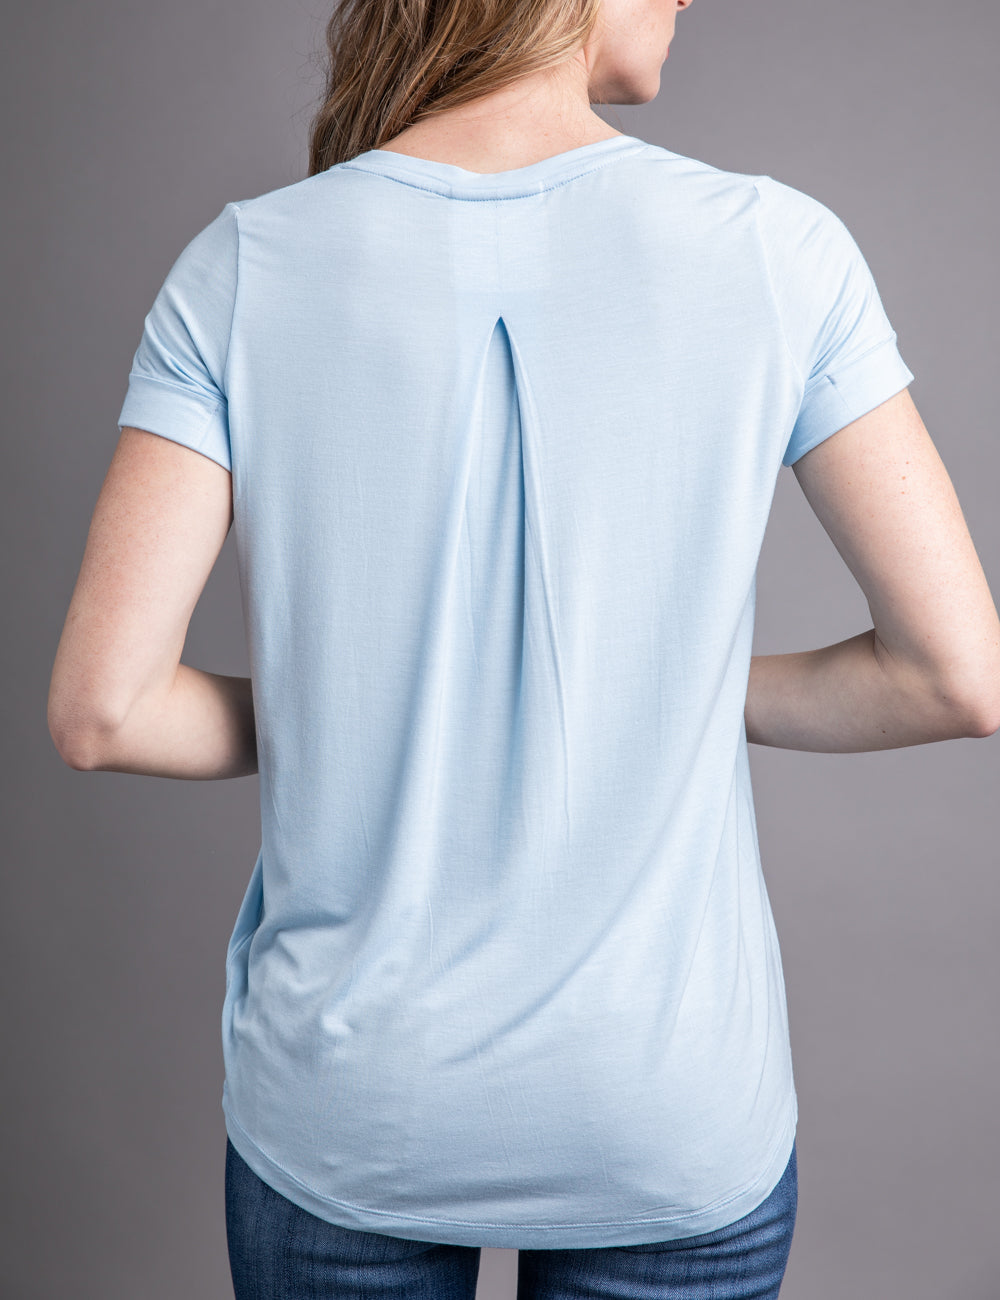 Majestic Short Sleeve V-neck Relaxed Tee in Angel Blue